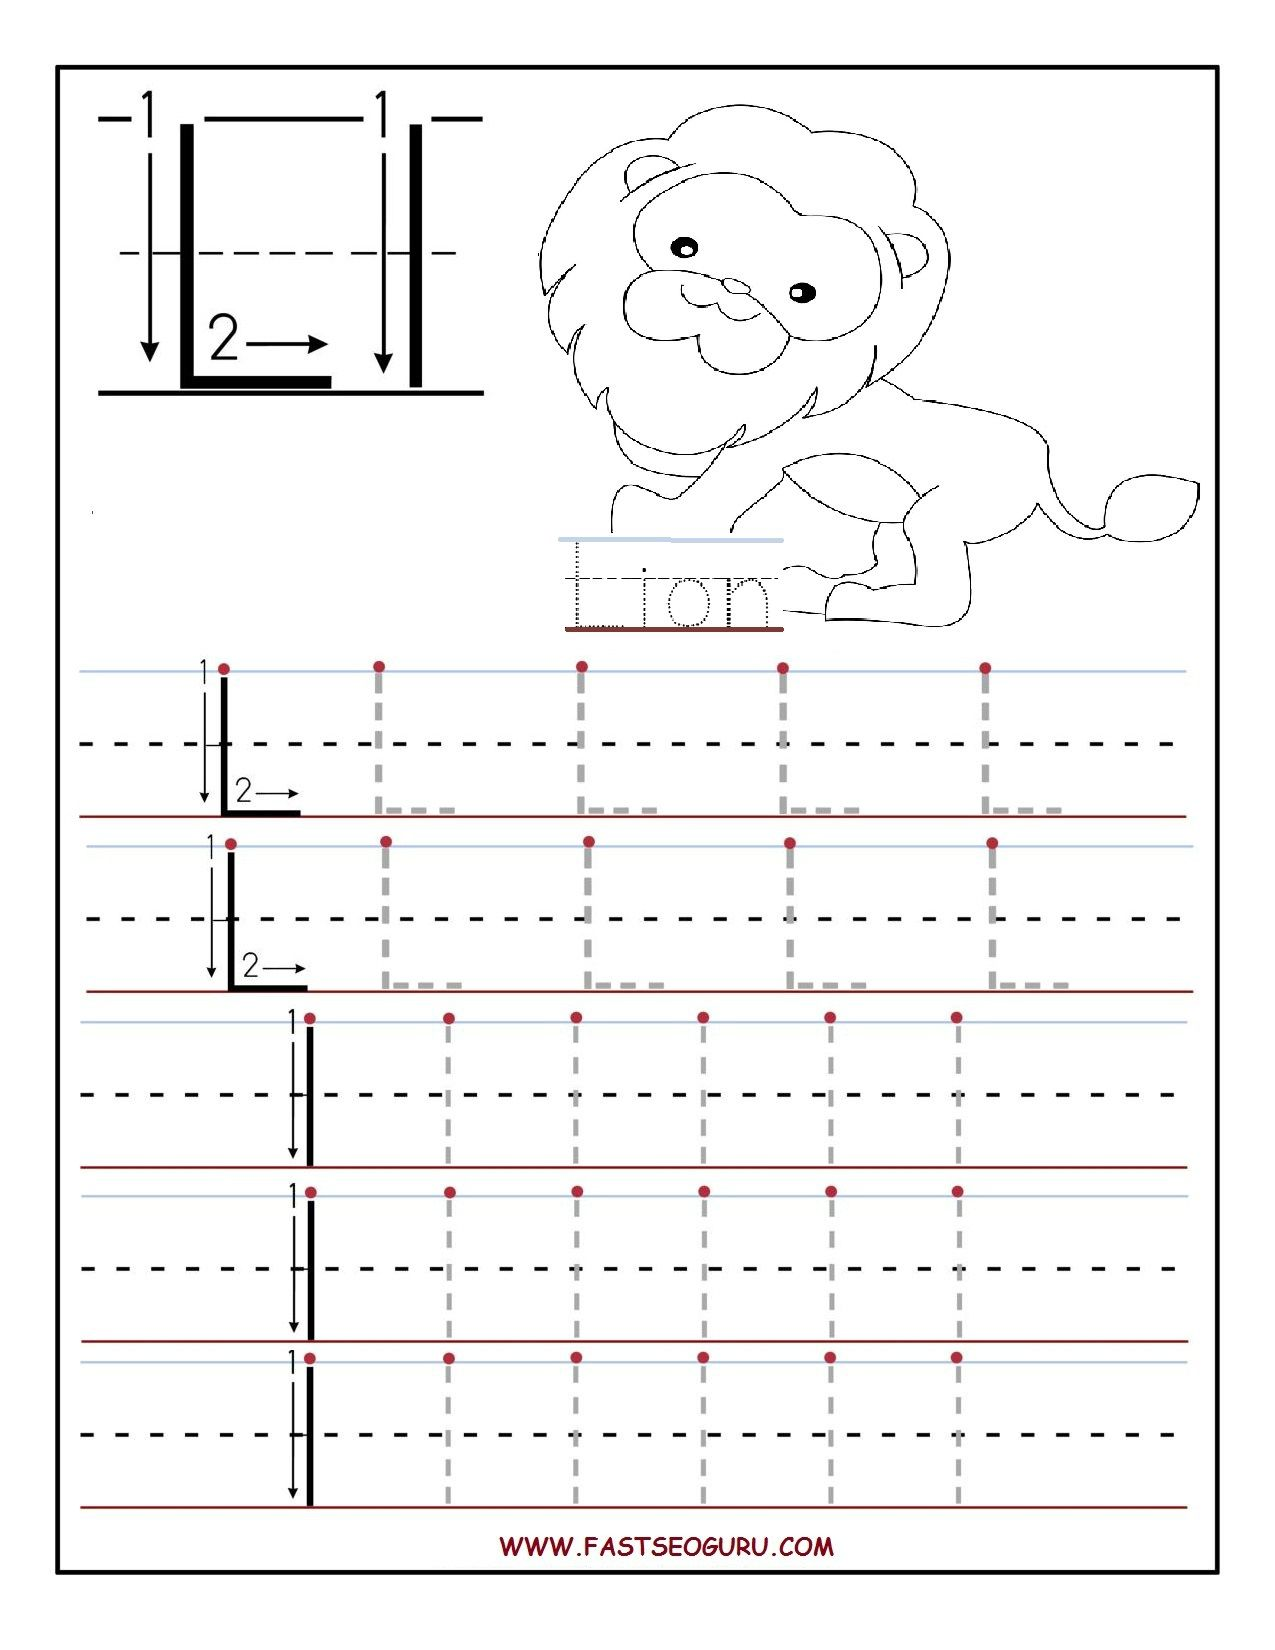 Printable letter l tracing worksheets for preschool education printable letter l tracing worksheets for preschool spiritdancerdesigns Images